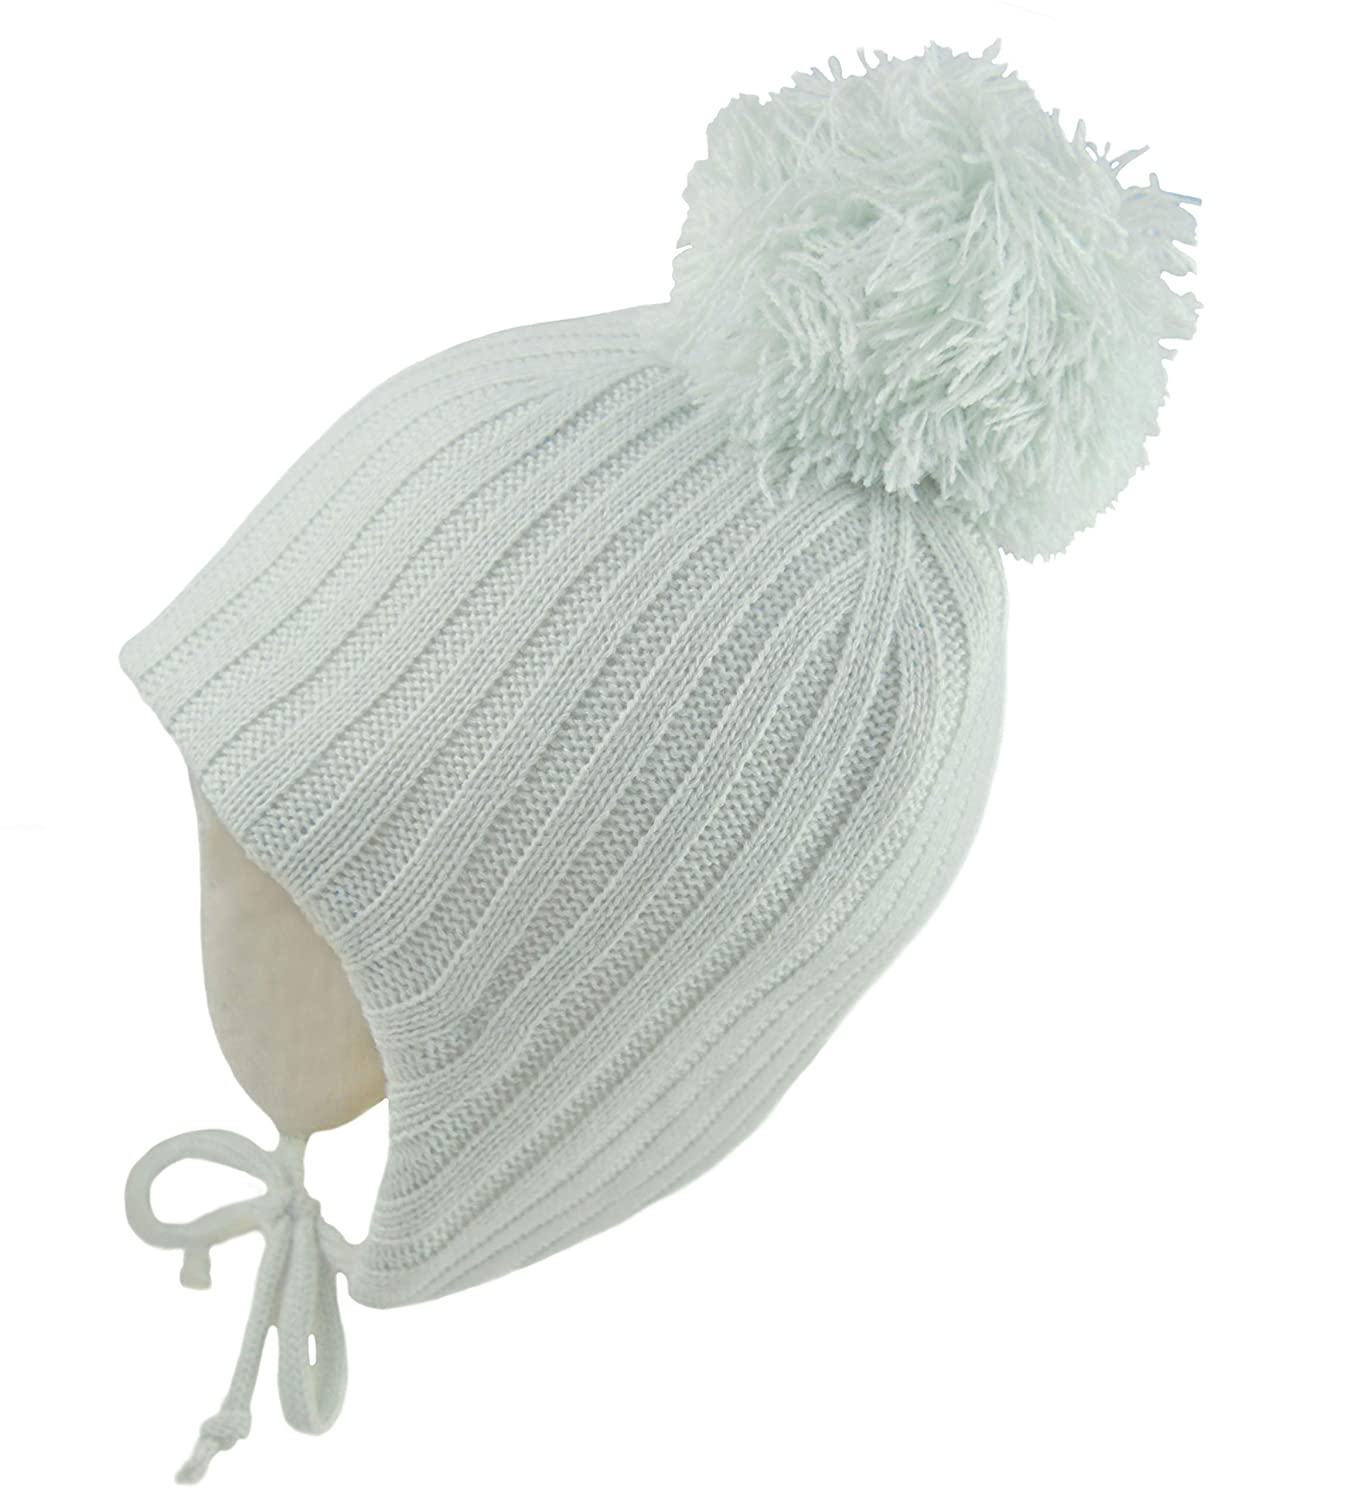 Pesci Baby Girls or Boys Double Pom Pom Hats Beanie Bobble Hat Wooly Ribbed Knitted Winter Cap Newborn to 12 Months